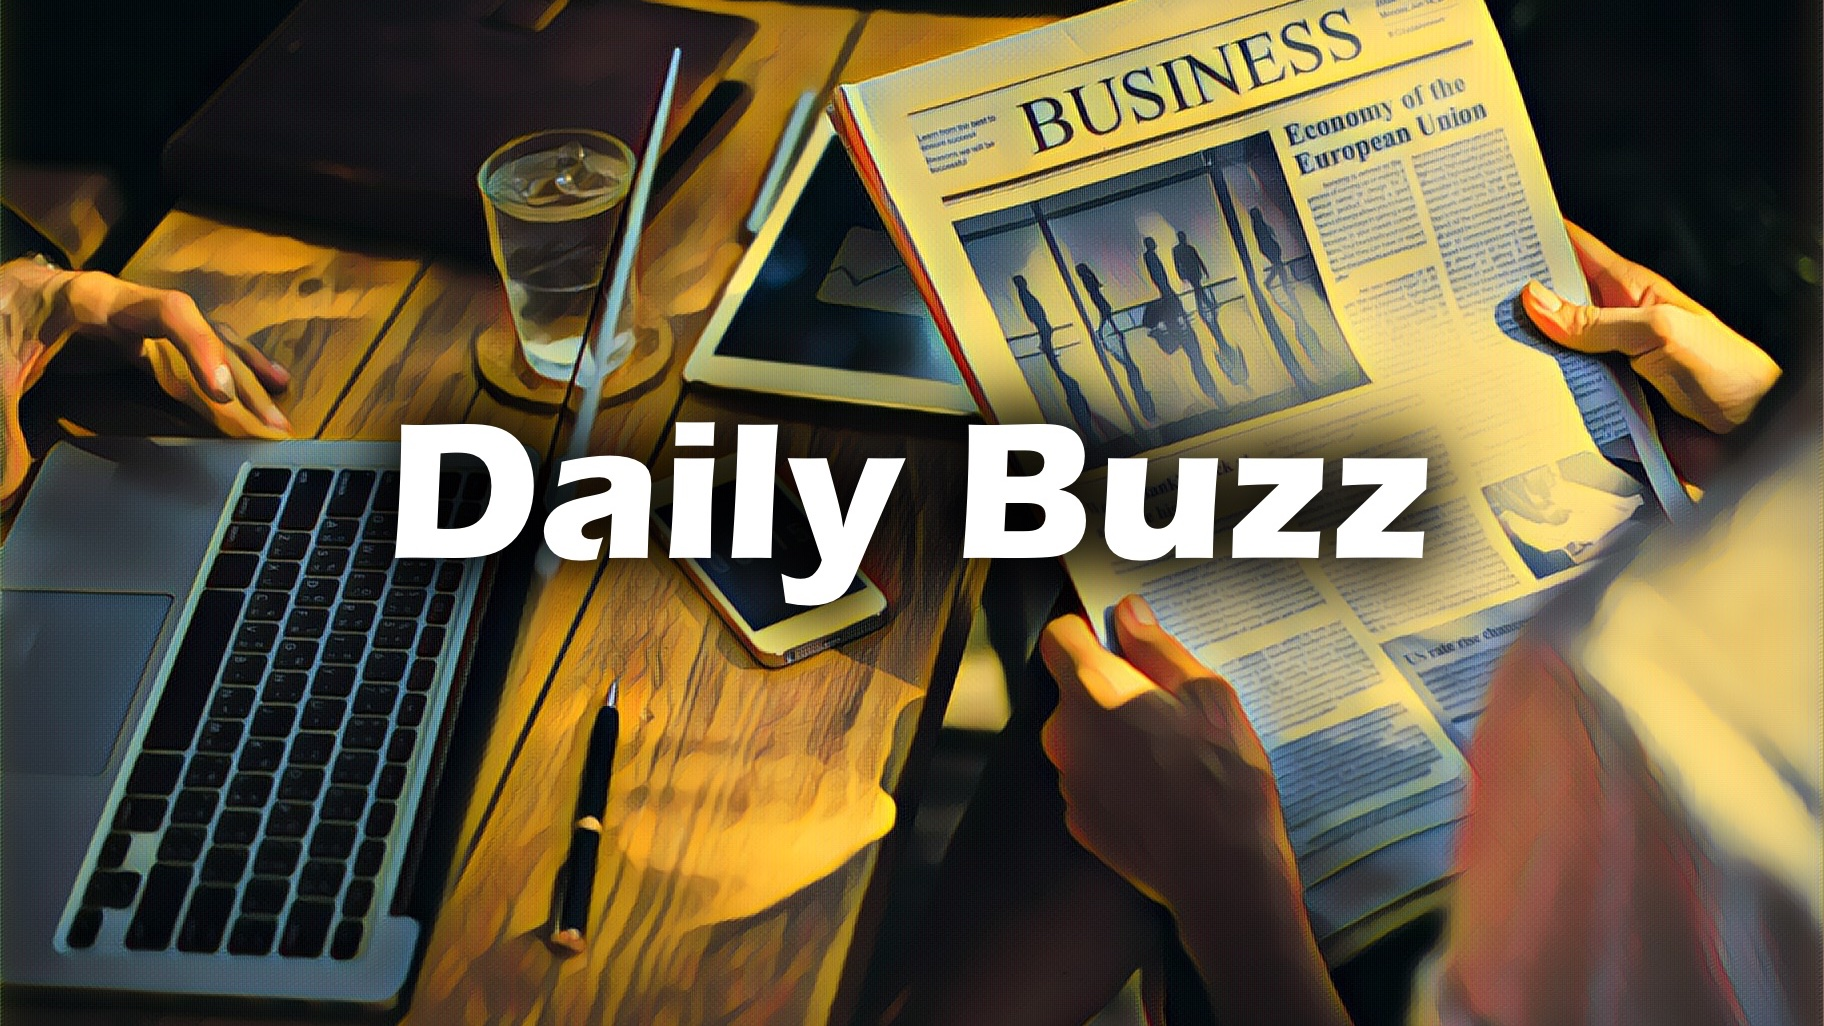 DailyBuzz Tuesday 21 August 2018